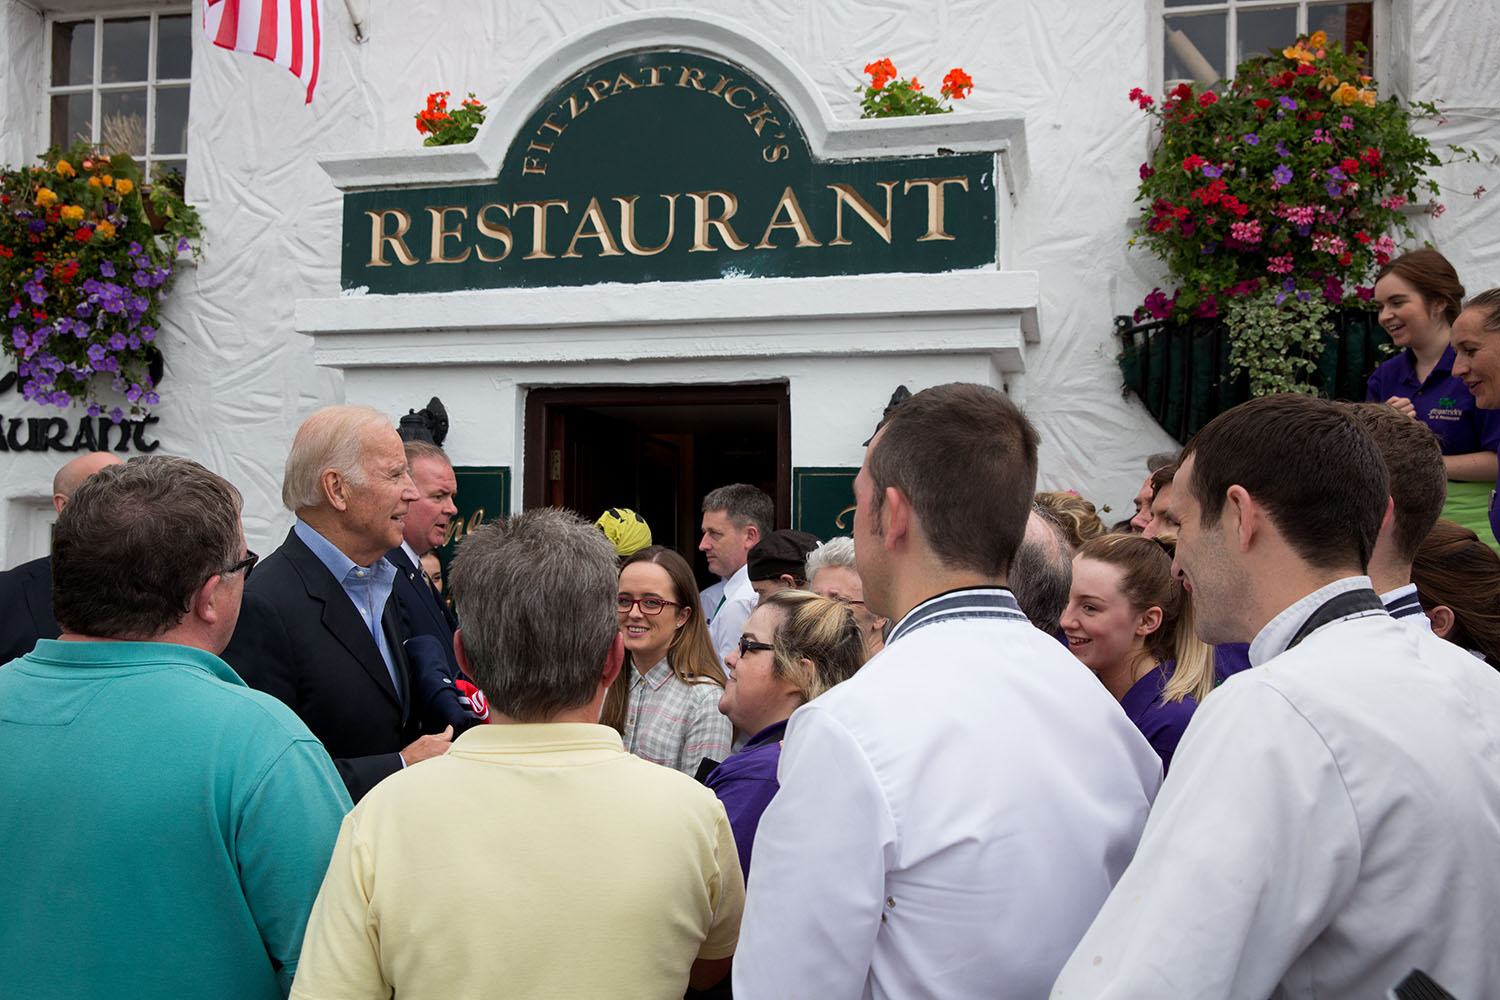 Vice President Joe Biden greets restaurant staff outside Fitzpatrick's Restaurant and Pub after a family lunch, in Dundalk, County Louth, Ireland, June 25, 2016. (Official White House Photo by David Lienemann)